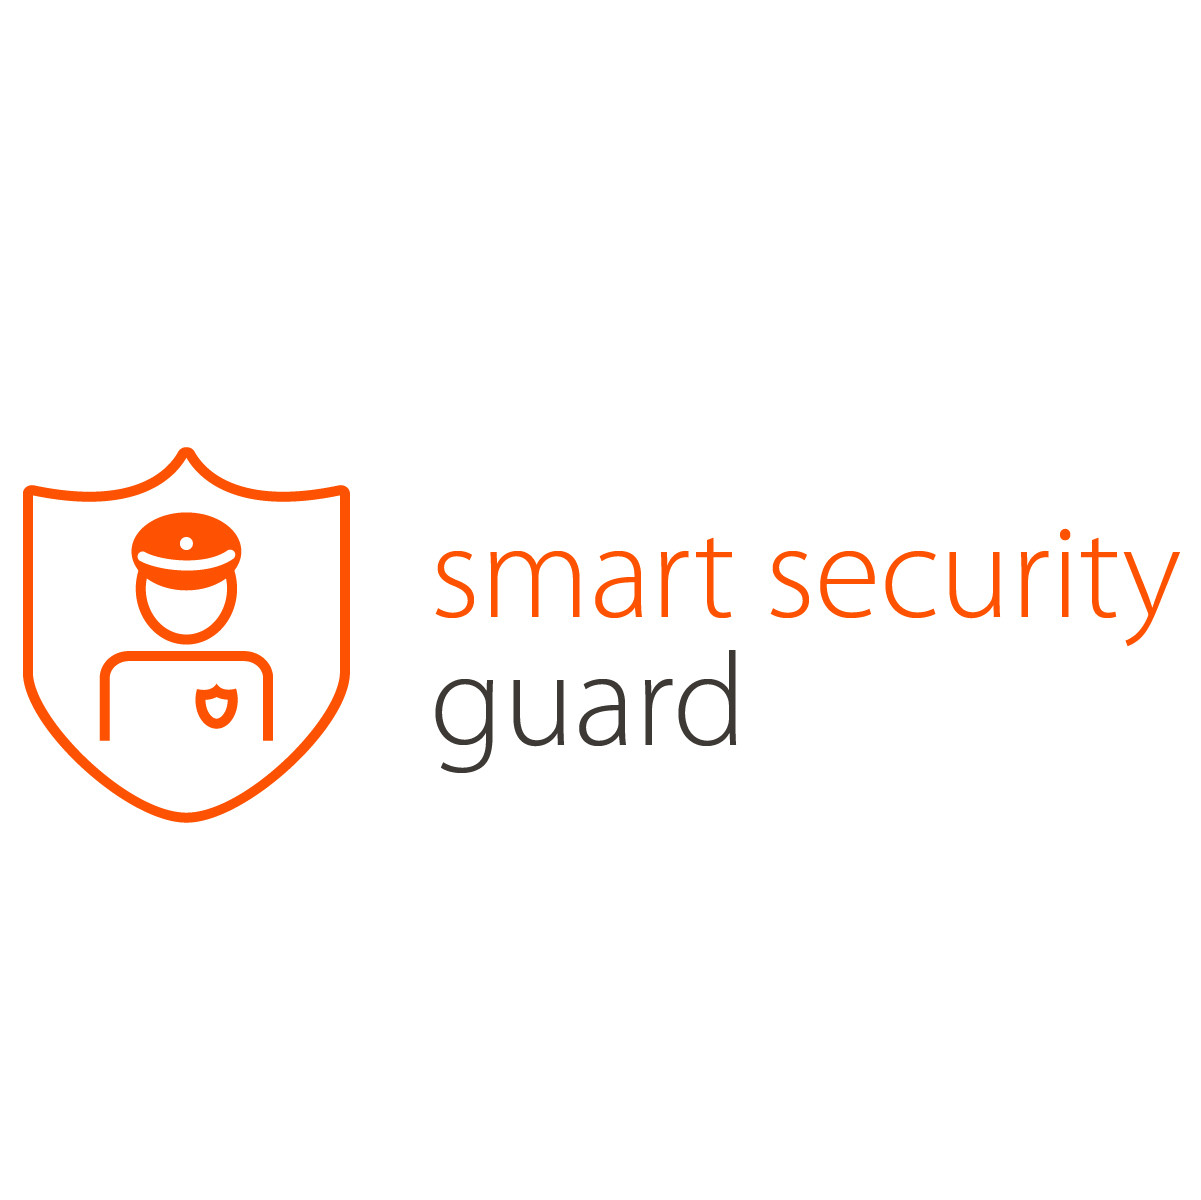 smart security guard